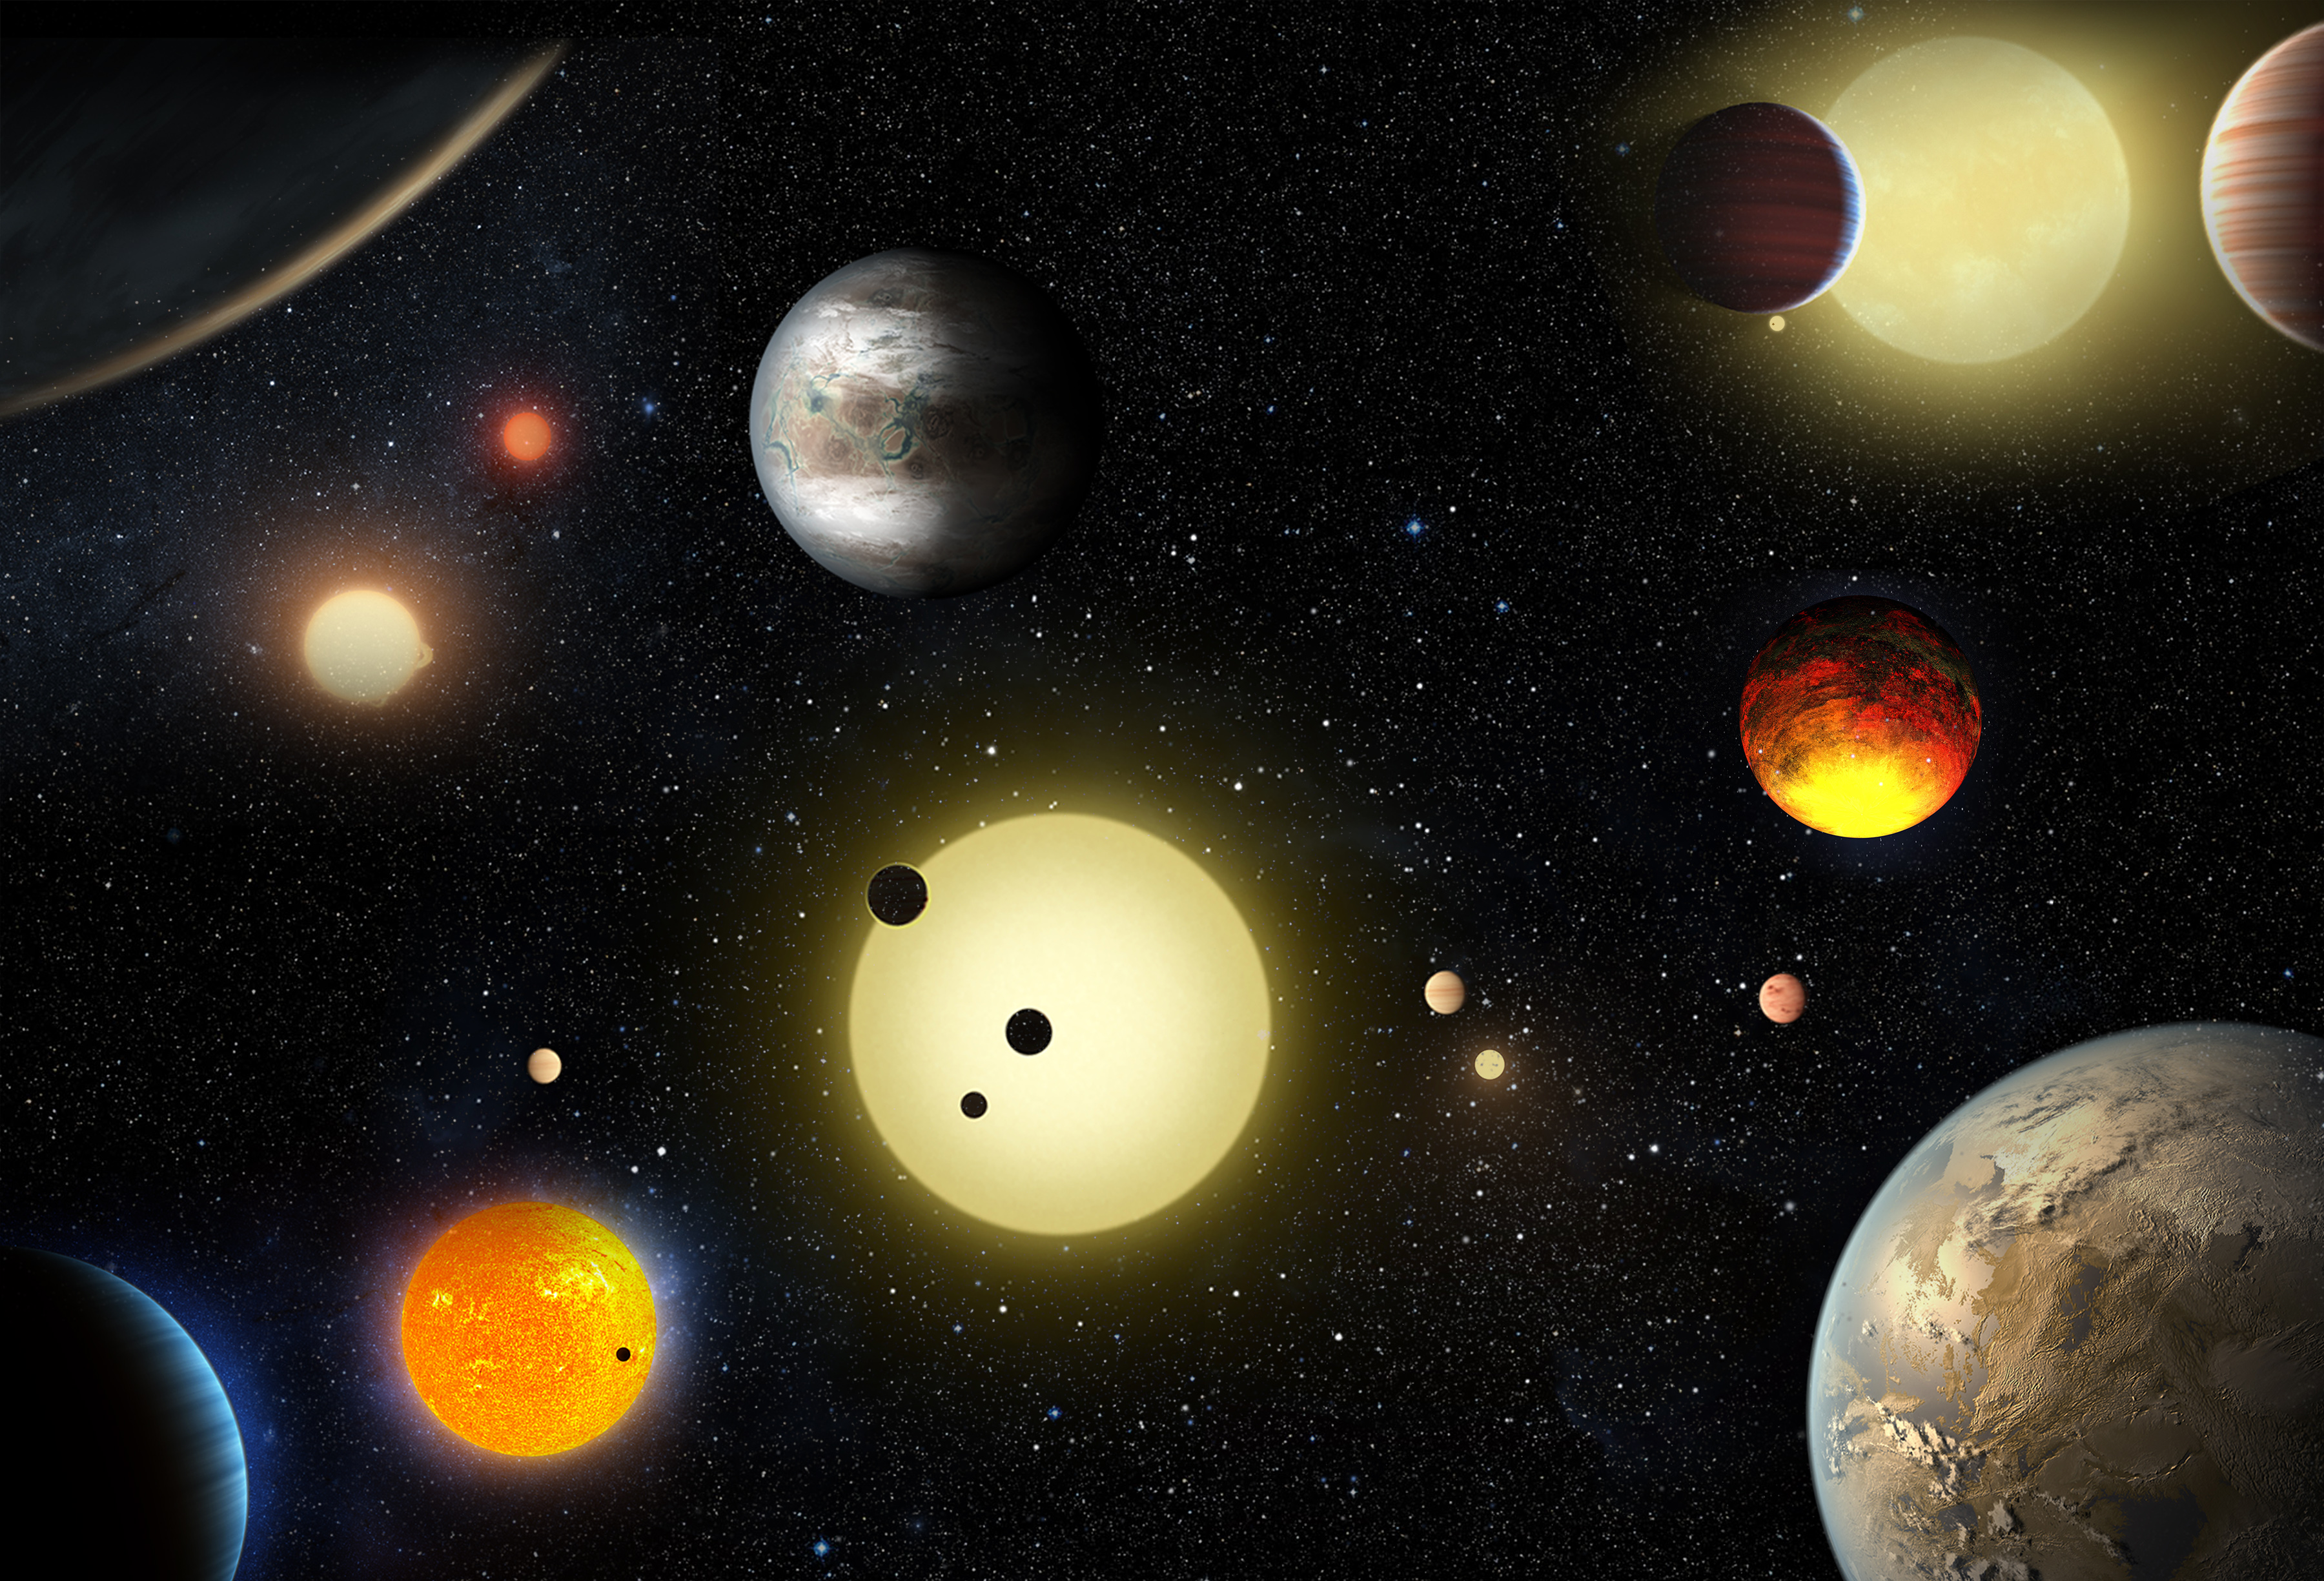 This artist's concept depicts select planetary discoveries made to date by NASA's Kepler space telescope. Credits: NASA/W. Stenzel